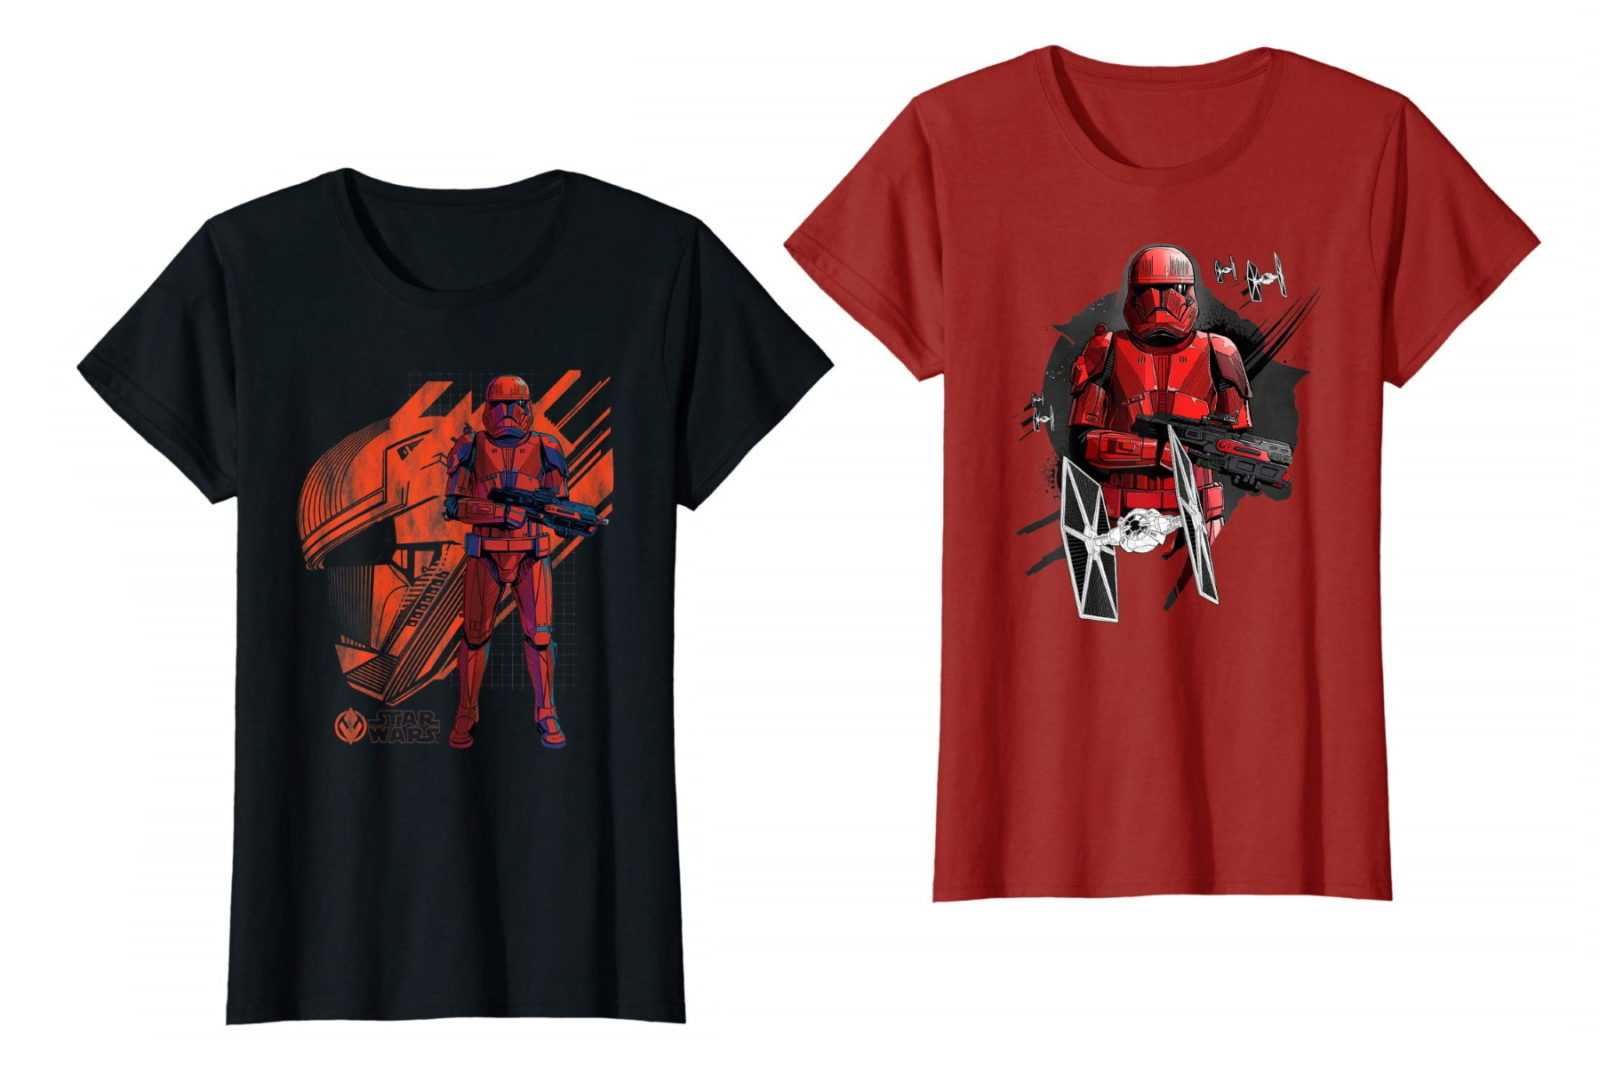 Women's Sith Trooper Tees on Amazon